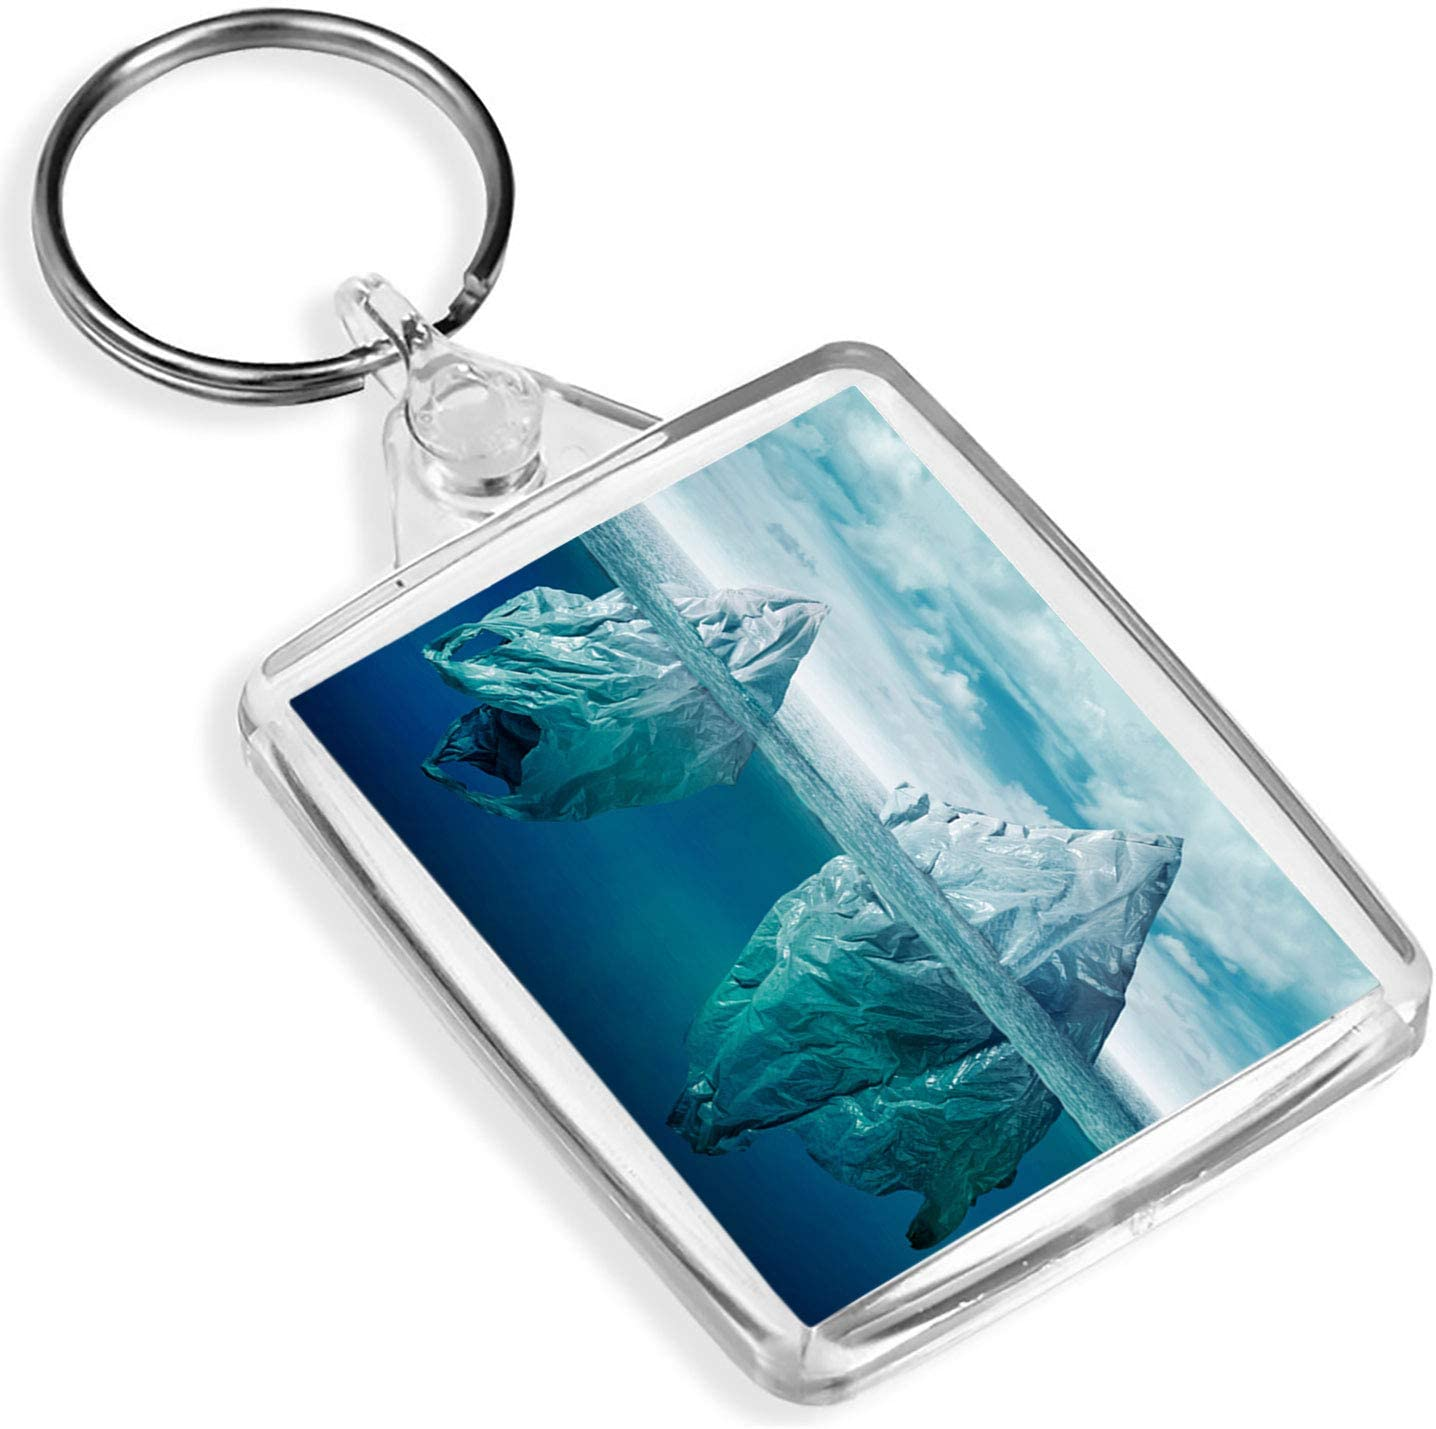 Destination Vinyl Keyrings 1 x Bolsa de plástico Iceberg Pollution Sea Save – Llavero – IP02 – Regalo para mamá papá niños # 3572